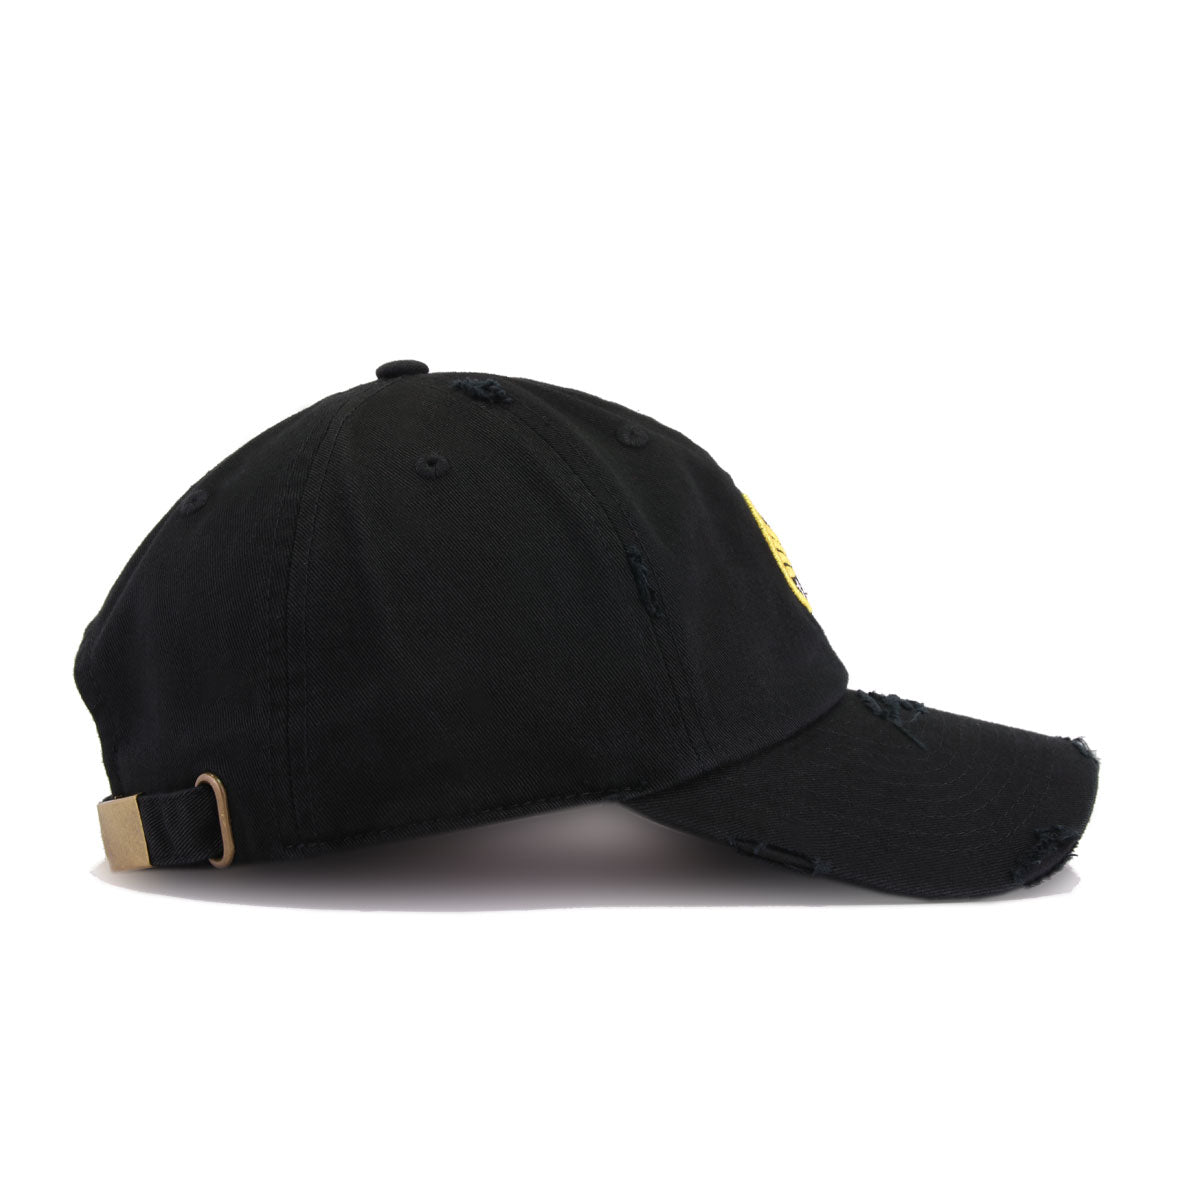 Distressed NASA Shuttle Black KBEthos Vintage Dad Hat